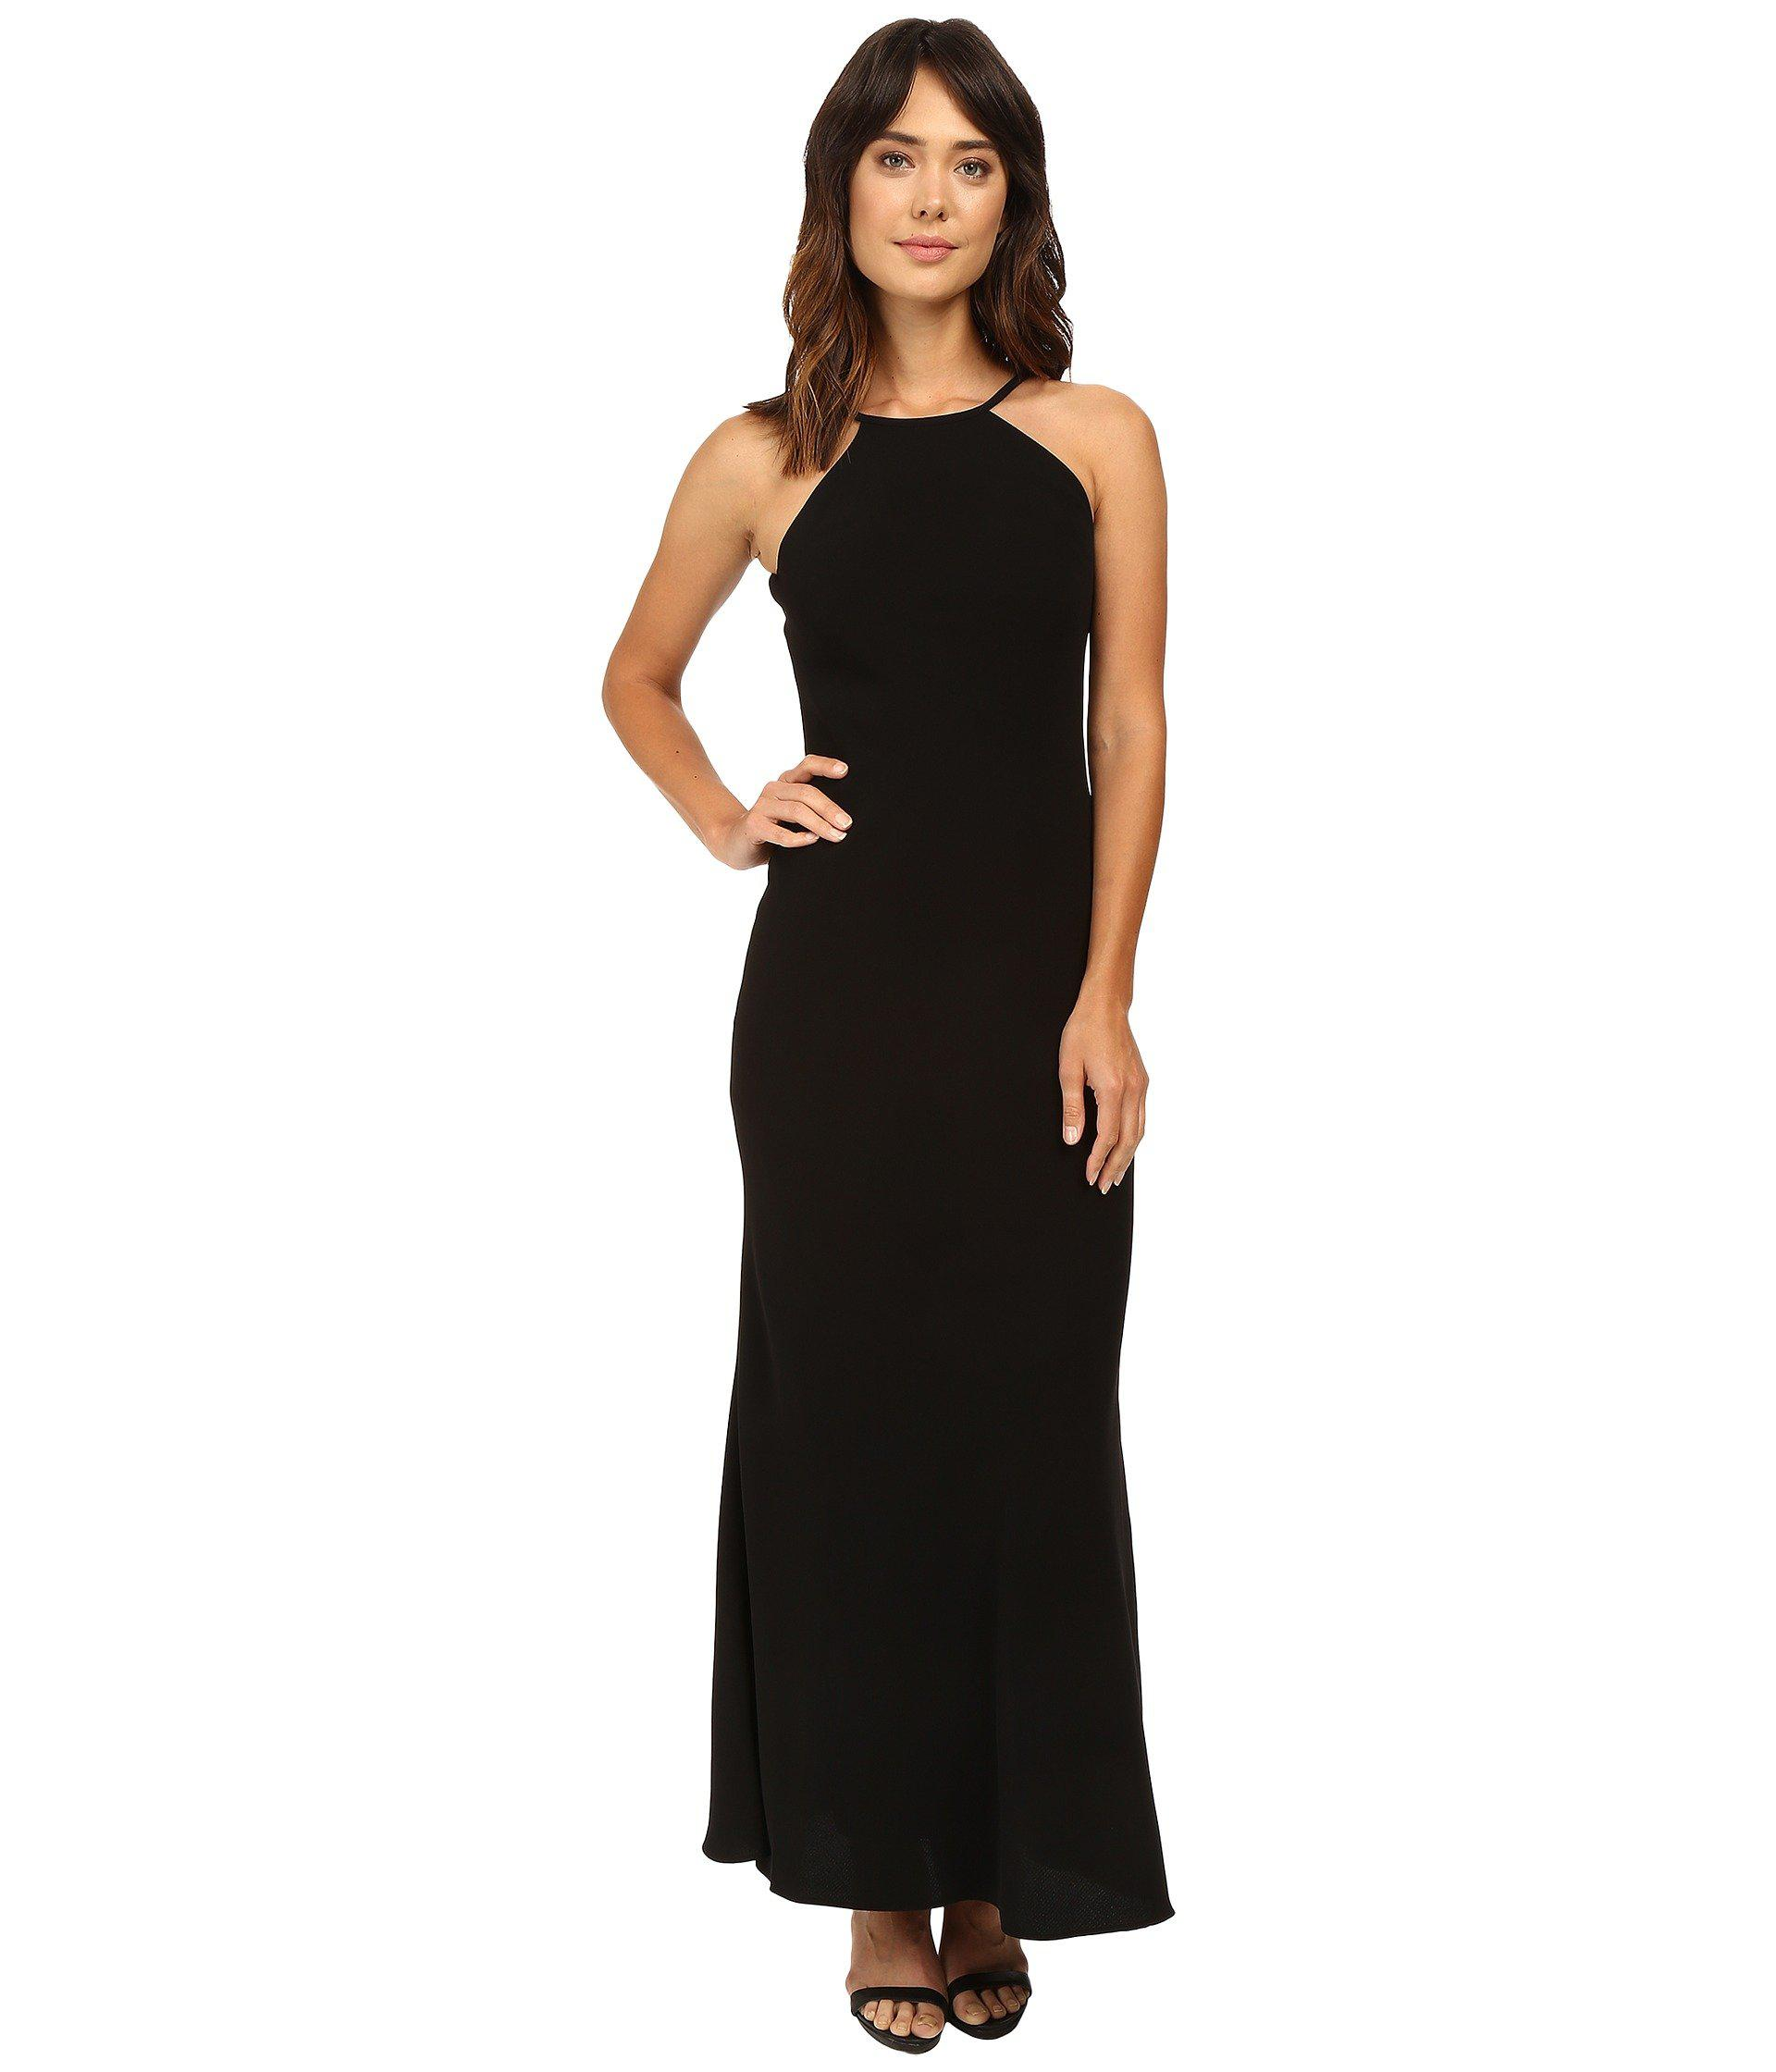 2d3ac5739383 Lyst - Calvin Klein Halter Neck Crepe Gown in Black - Save 44%